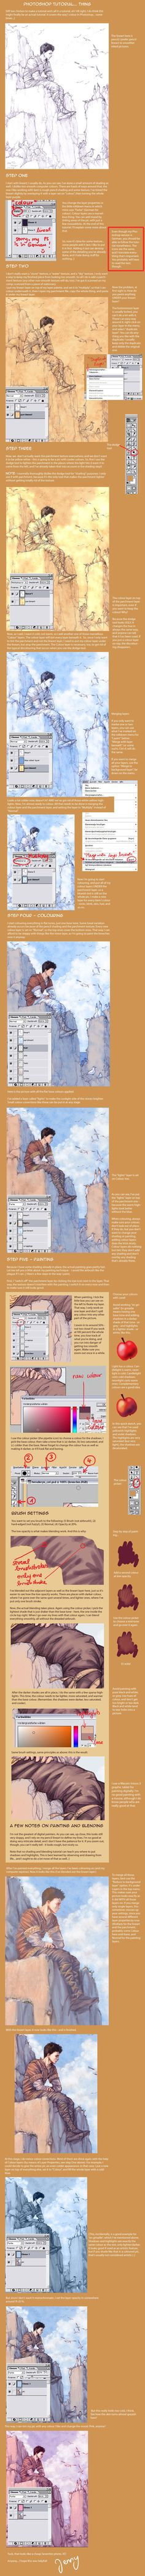 Colouring in Photoshop by =Gold-Seven